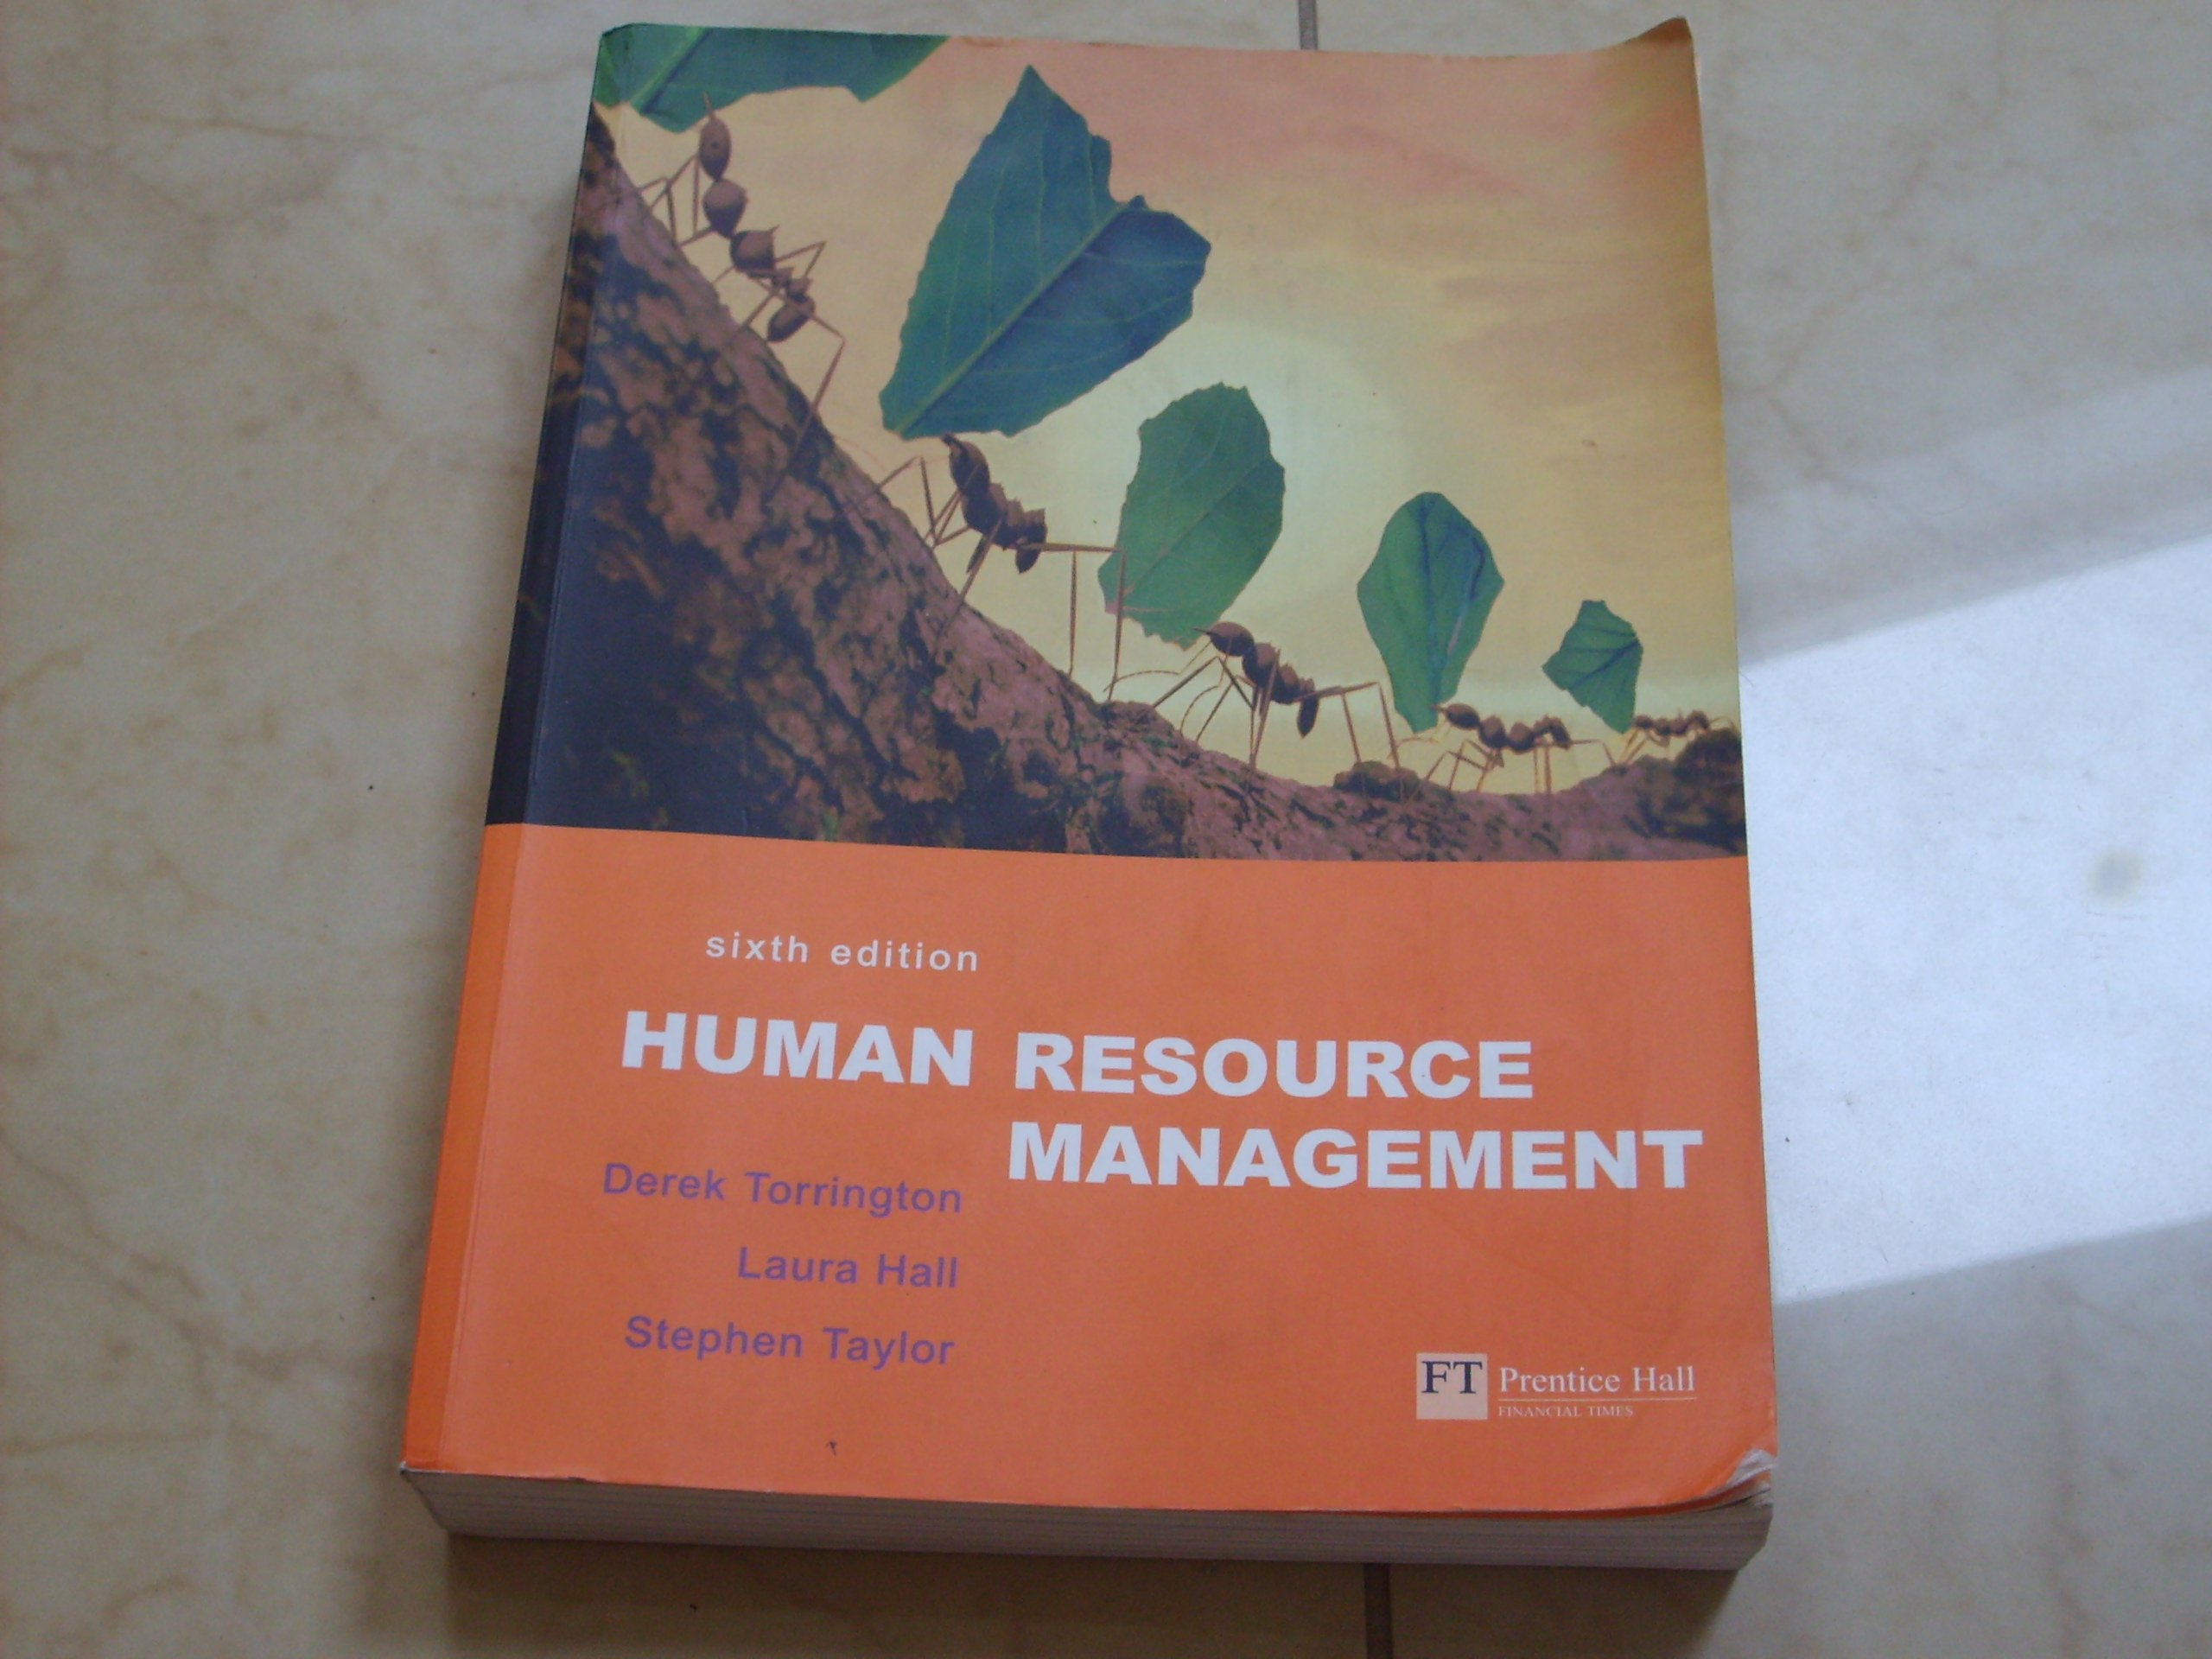 FOR SALE: Human Resource Management (6th Edition)